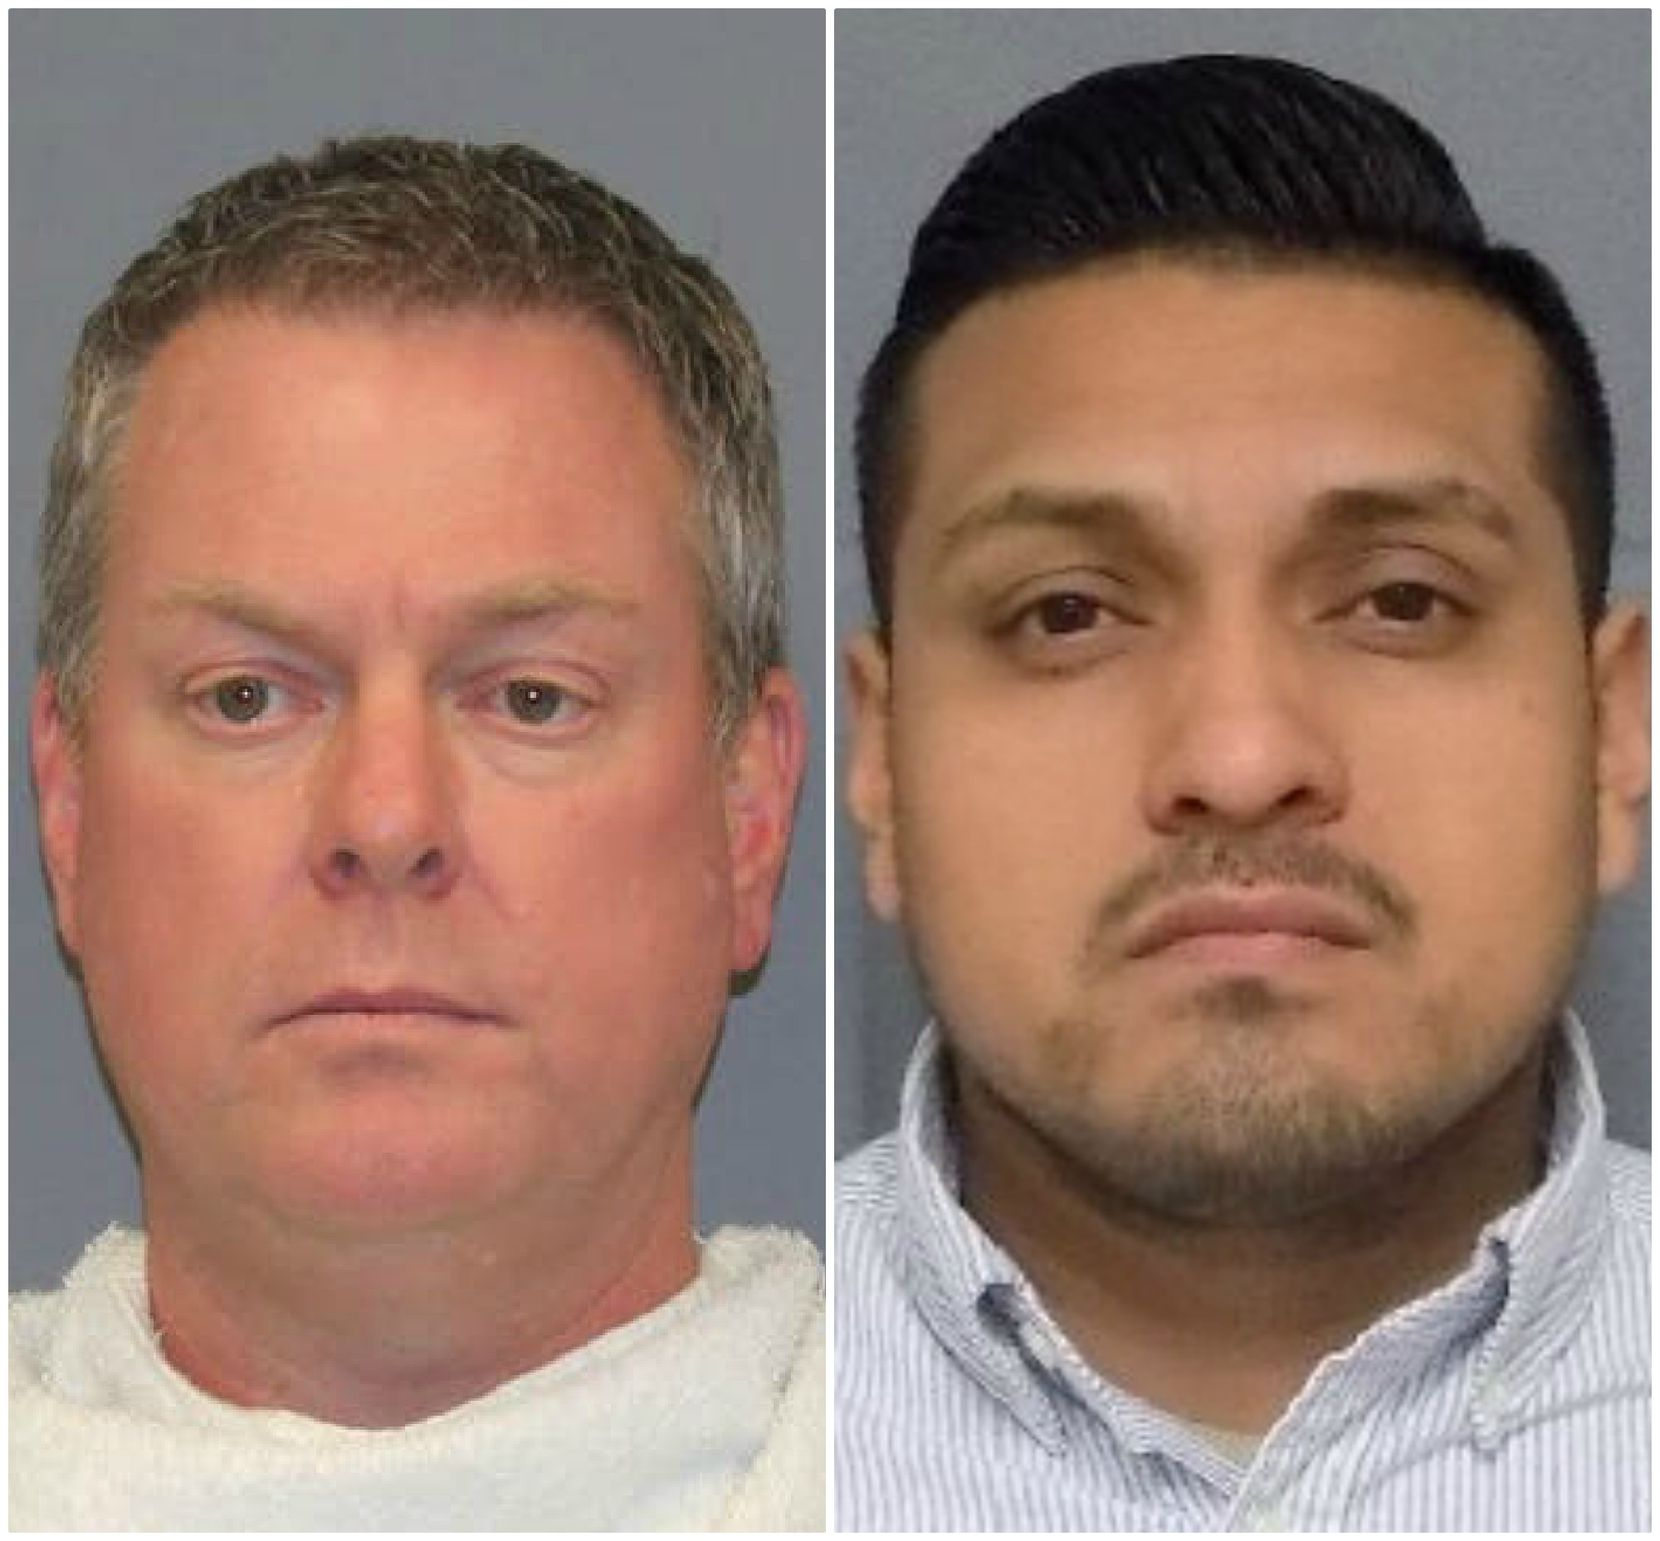 Dallas police Sgt. Kevin Mansell and Officer Danny Vasquez each face misdemeanor charges of deadly conduct in the August 2016 death of Tony Timpa.